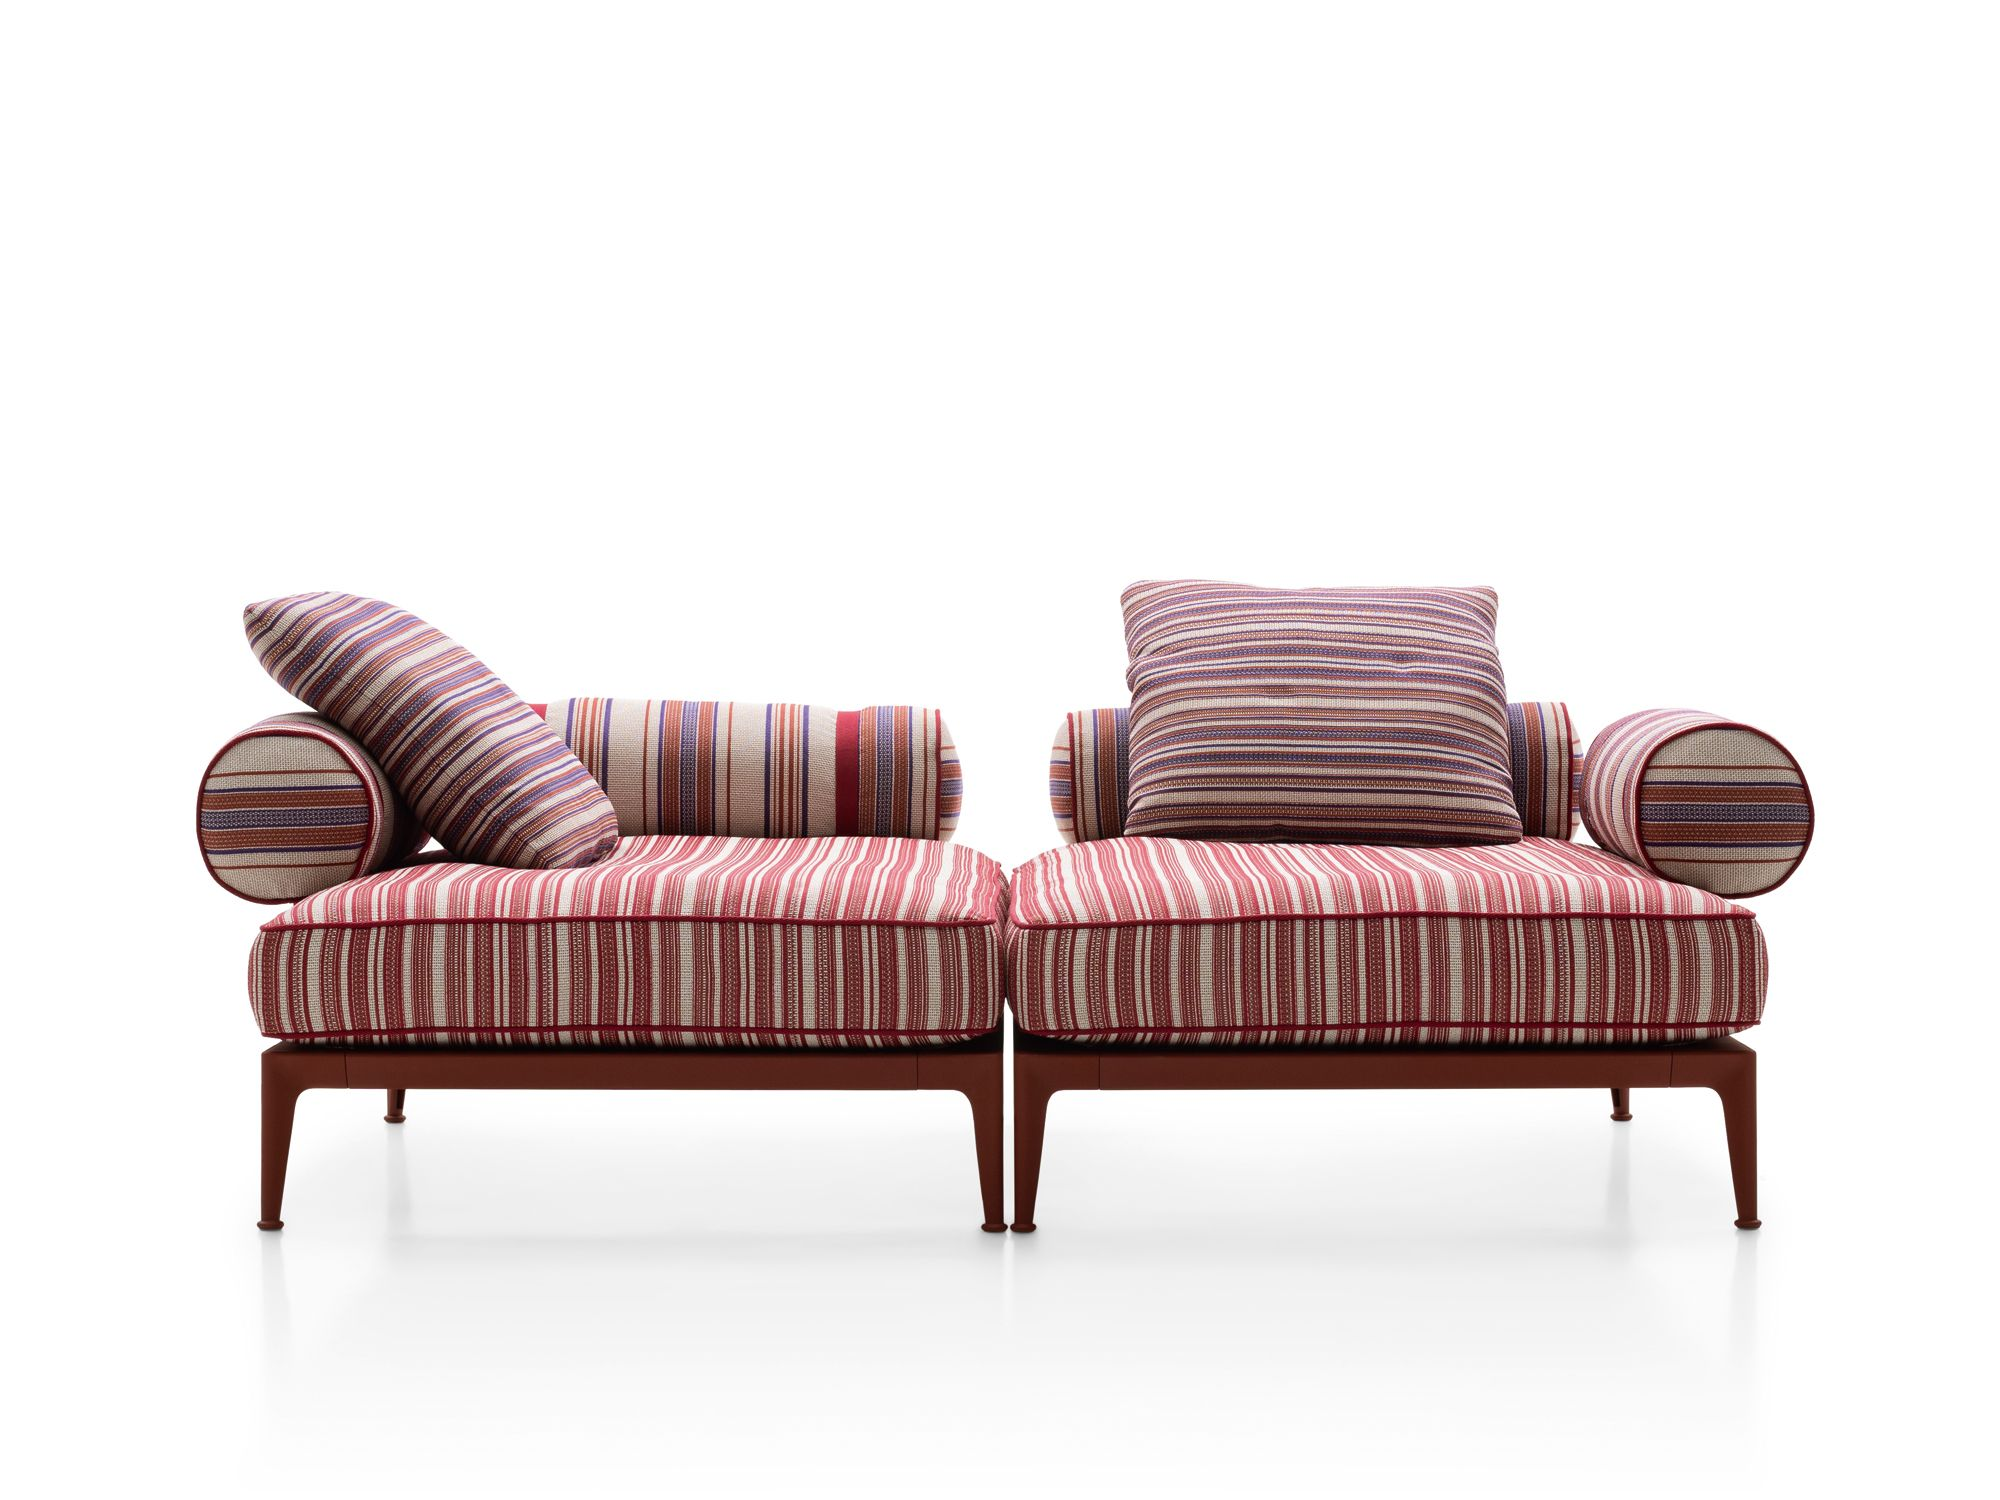 B&B Italia Ribes outdoor collection by Antonio Citterio, available from Space Furniture